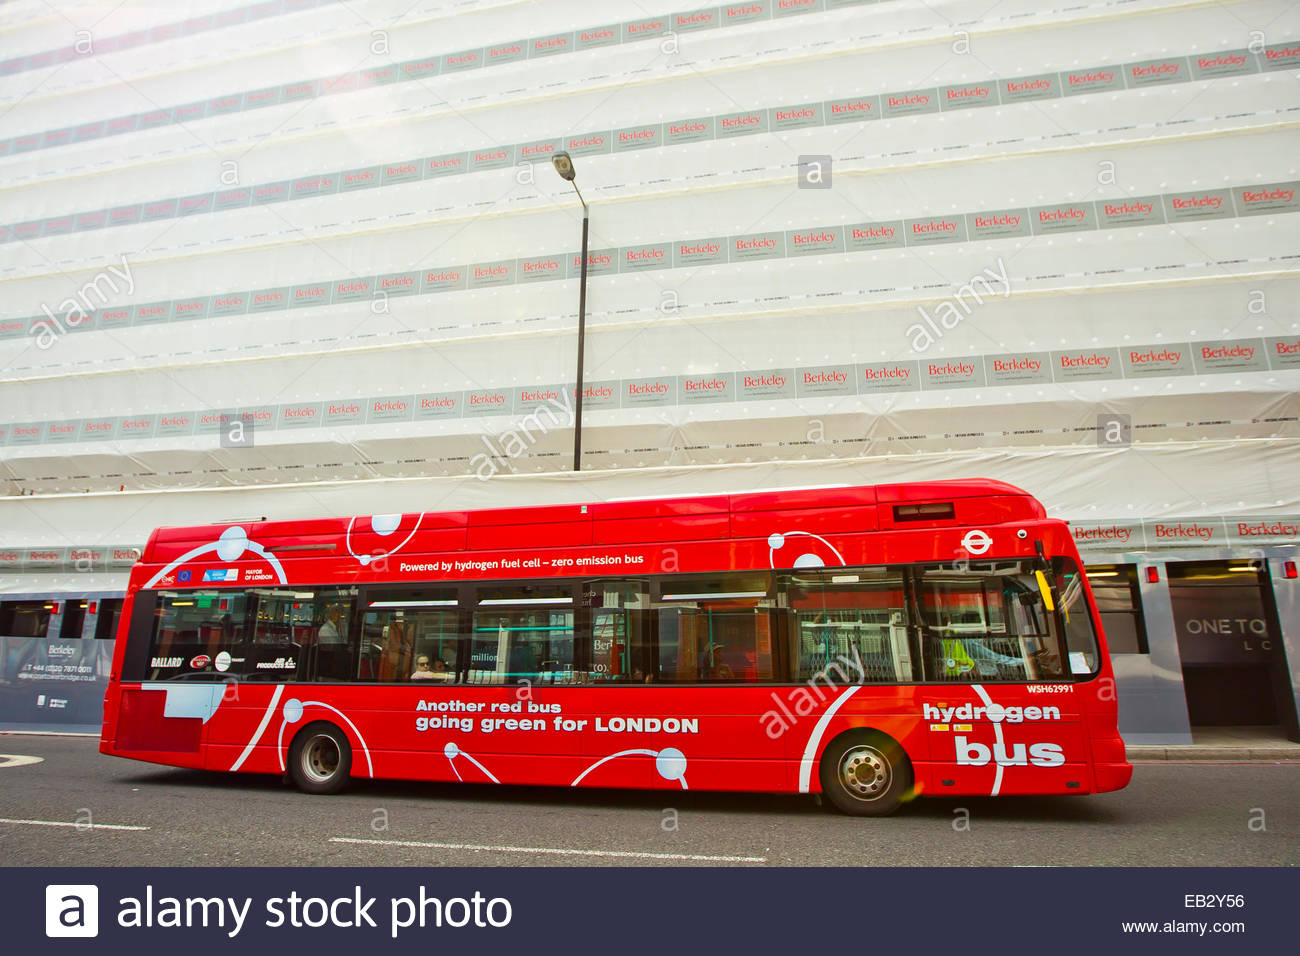 An efficient, non-polluting red hydrogen-powered bus on the streets of London. - Stock Image